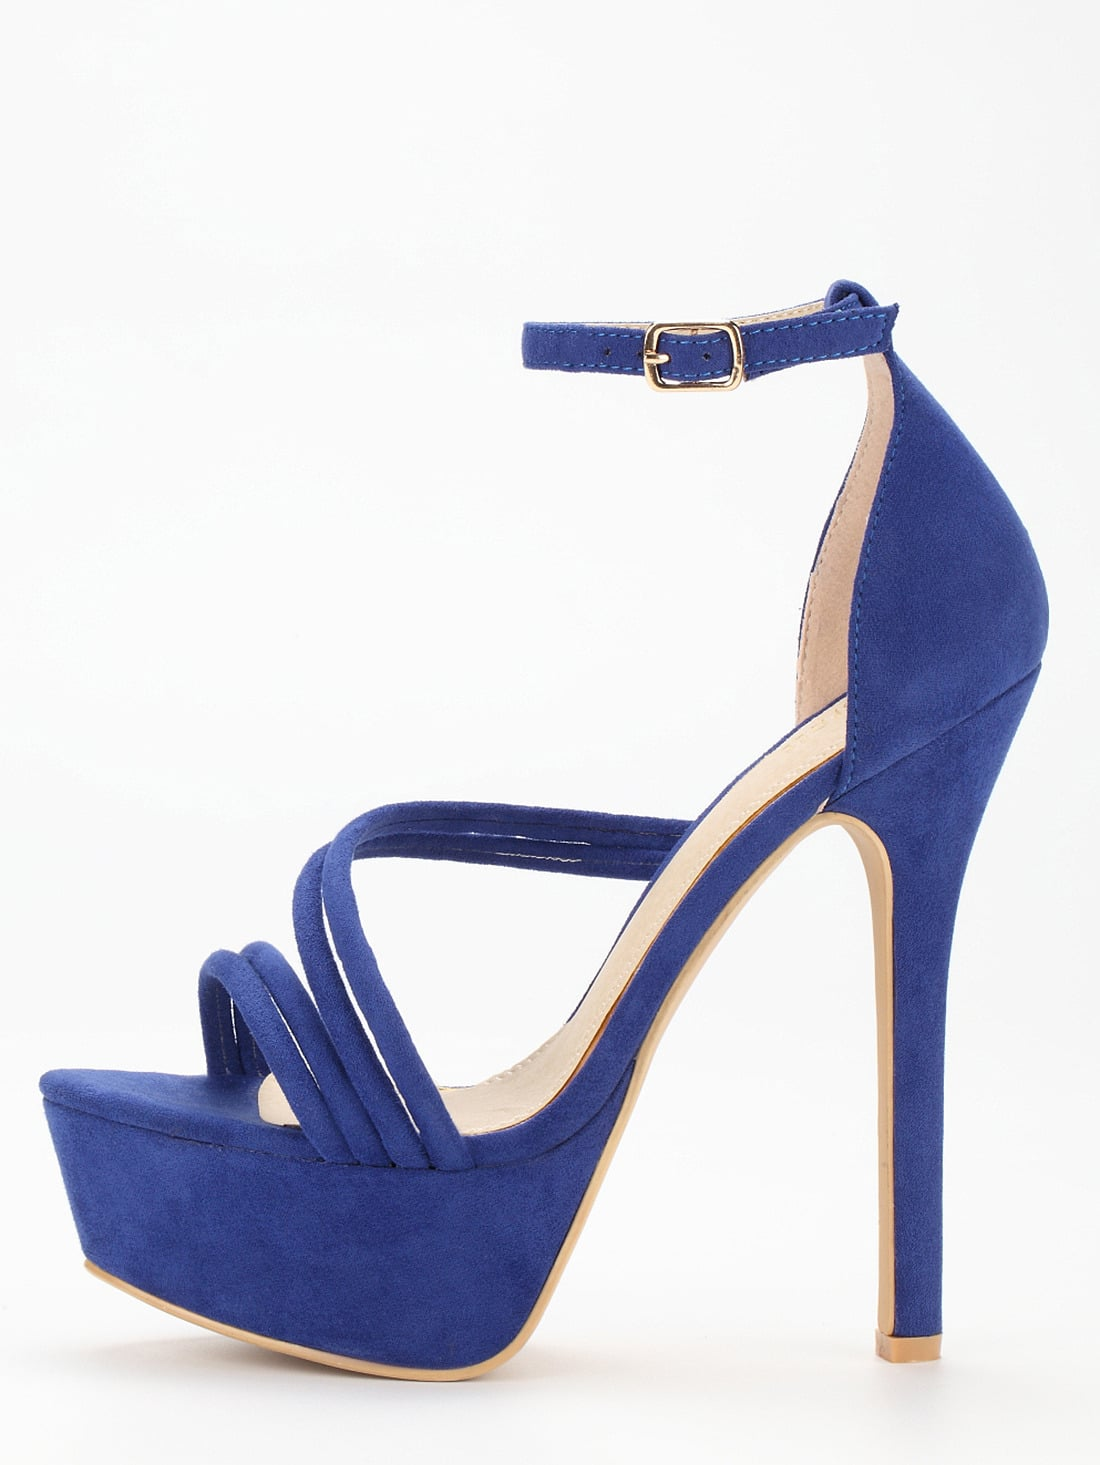 Sam Edelman Hazel Pointed Toe Heel Blue Linen. was, save. 45% OFF. Sam Edelman Hazel Pointed Toe Heel Natural Embroidered. was, save. Sam Edelman Aly Ankle Strap Heel Sunglow Yellow Suede. was, save. 30% OFF. Sam Edelman Aly Ankle Strap Heel Blue Satin. was, save.